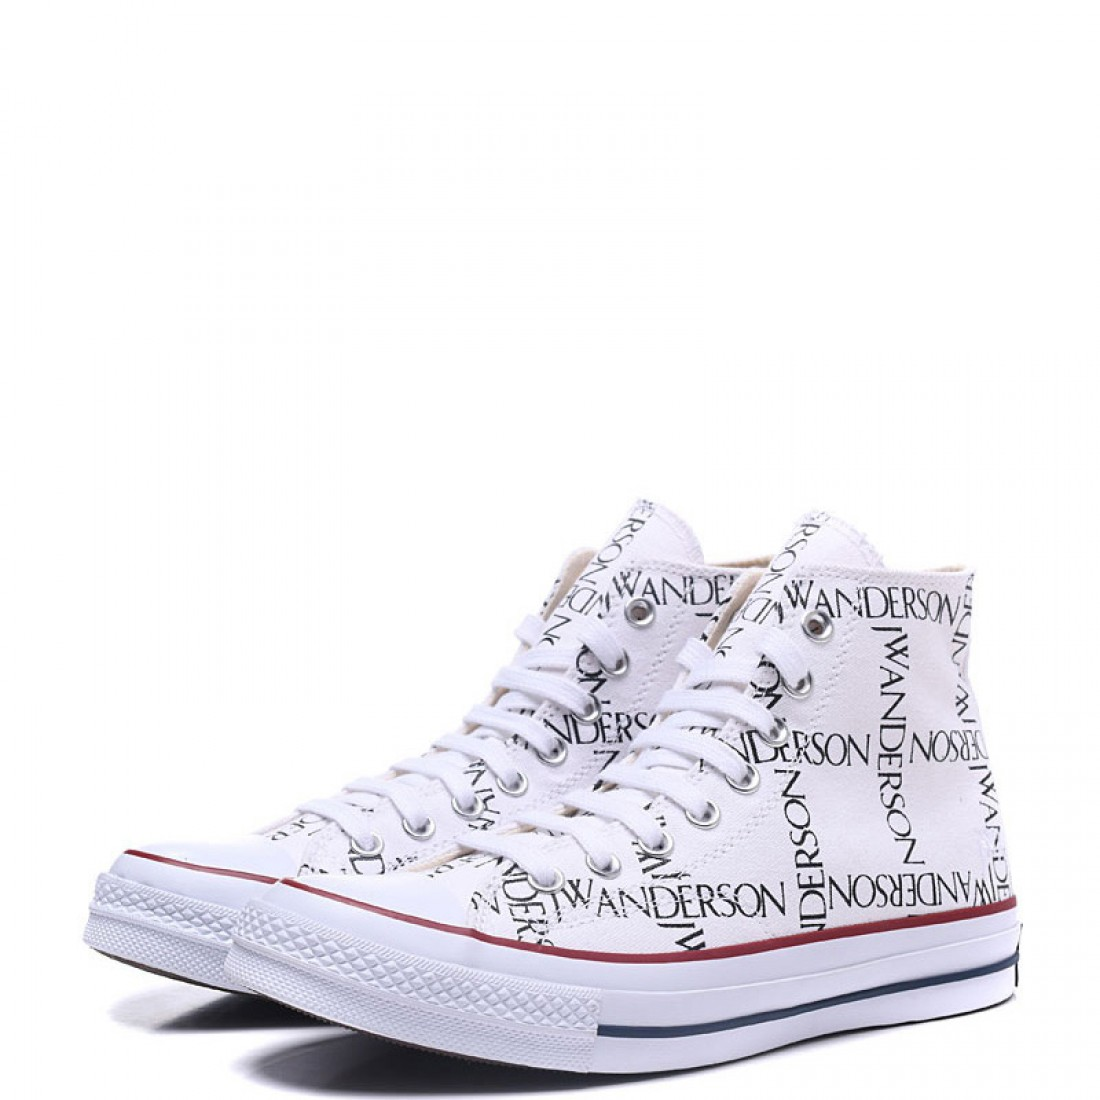 JW Anderson Converse Chuck 70 High Grid Pack Available Now